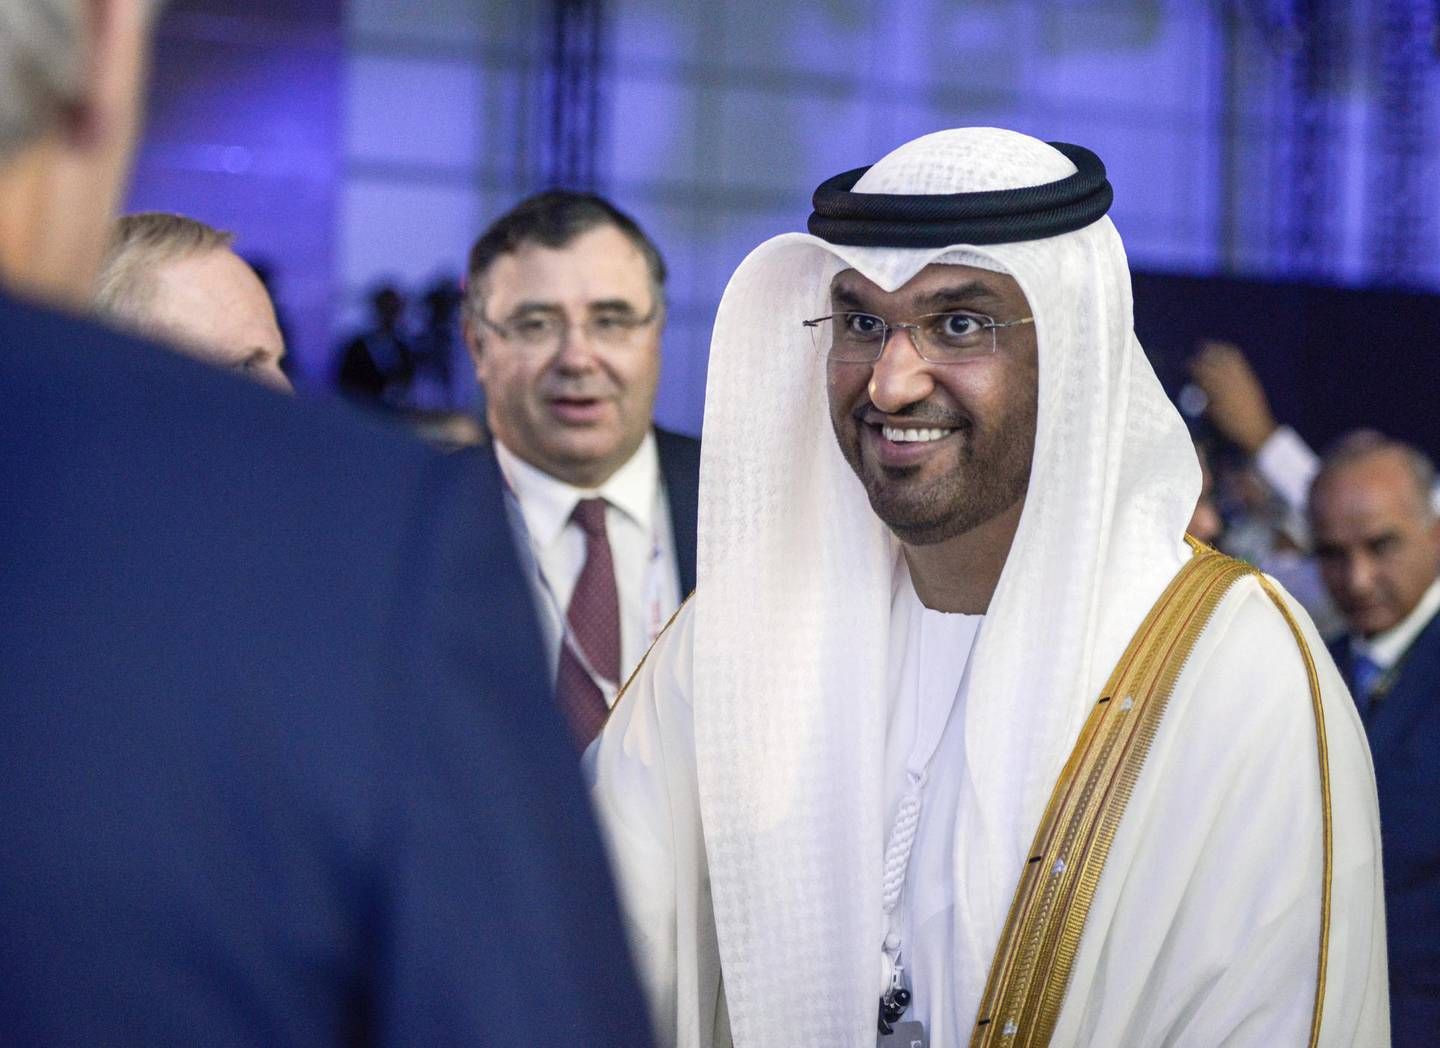 Abu Dhabi, United Arab Emirates - Dr. Sultan Ahmed Al Jaber, UAE Minister of State and ADNOC Group CEO at the Abu Dhabi International Petroleum Exhibition and Conference on Monday November 13, 2017. (Khushnum Bhandari/ The National)